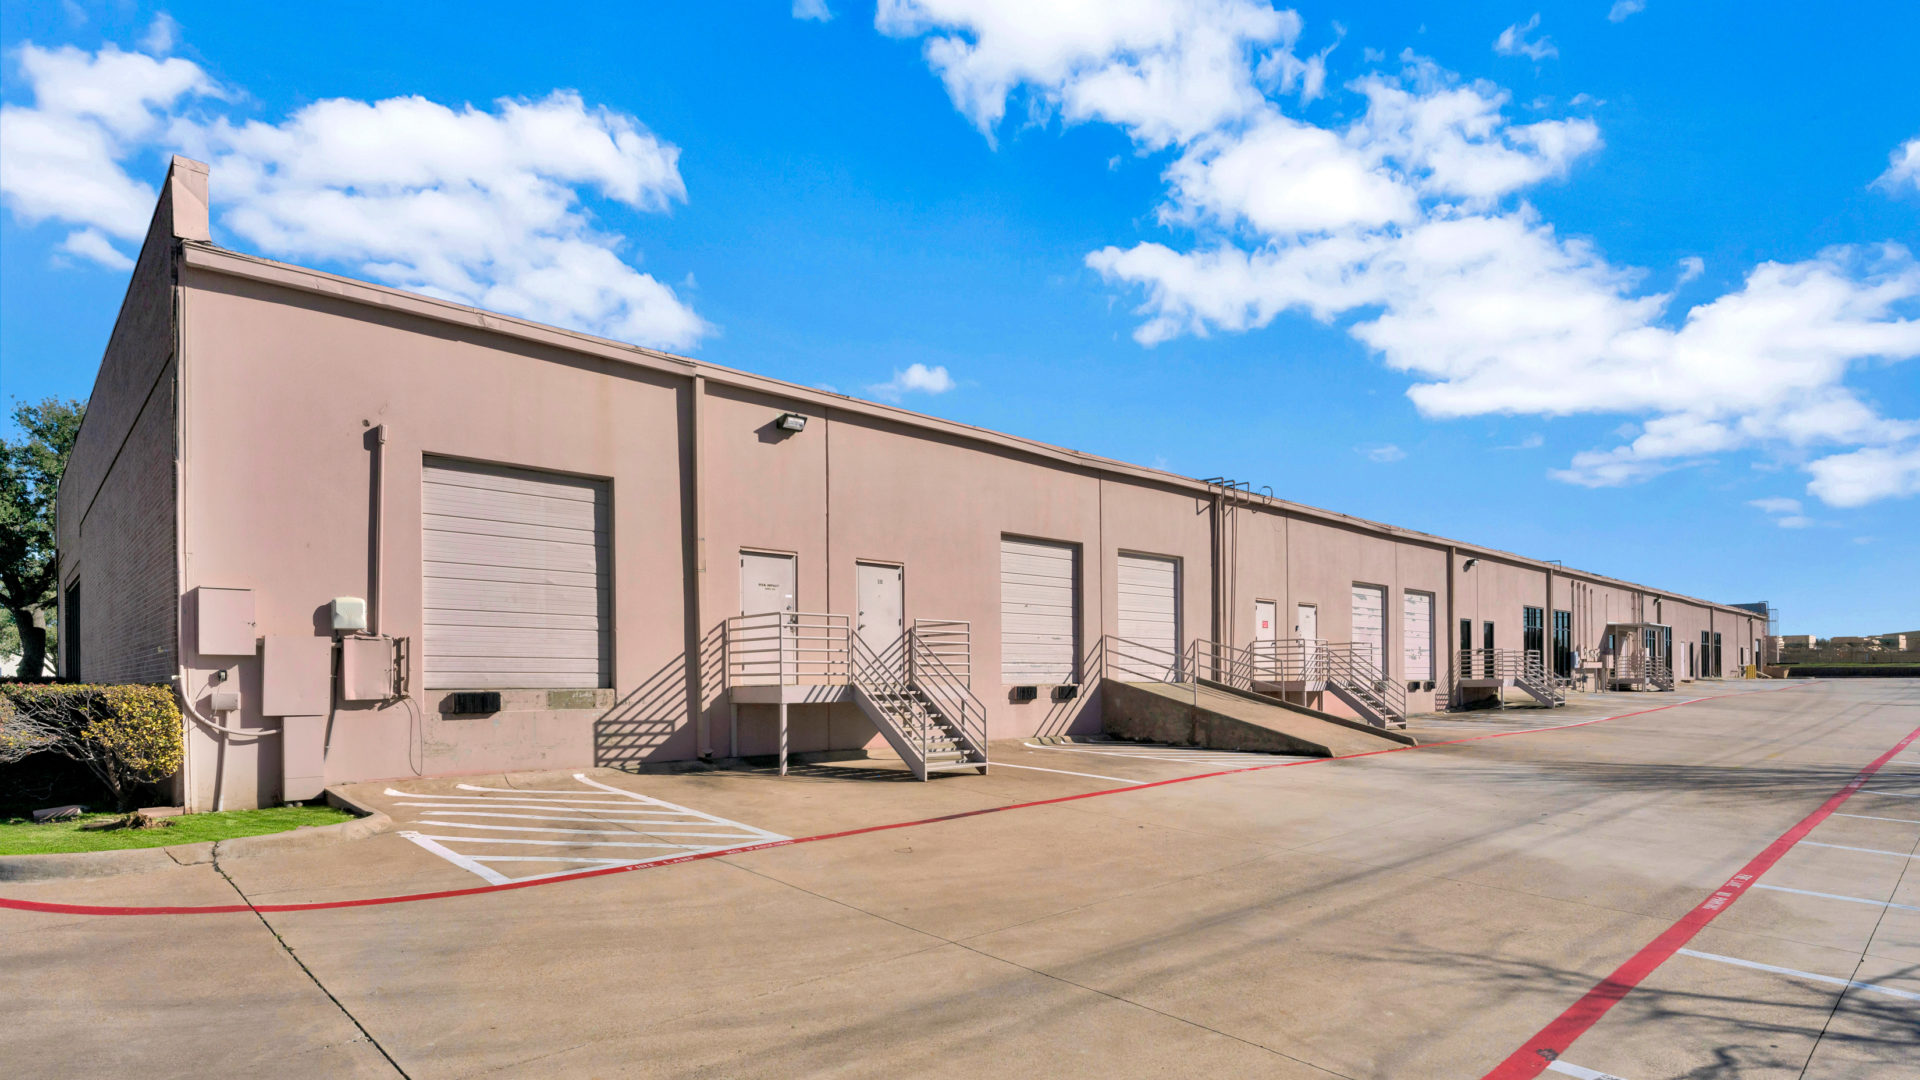 Up-close view of the backside of the Avion Business Park with multiple garage doors, loading docks, and truck ramps